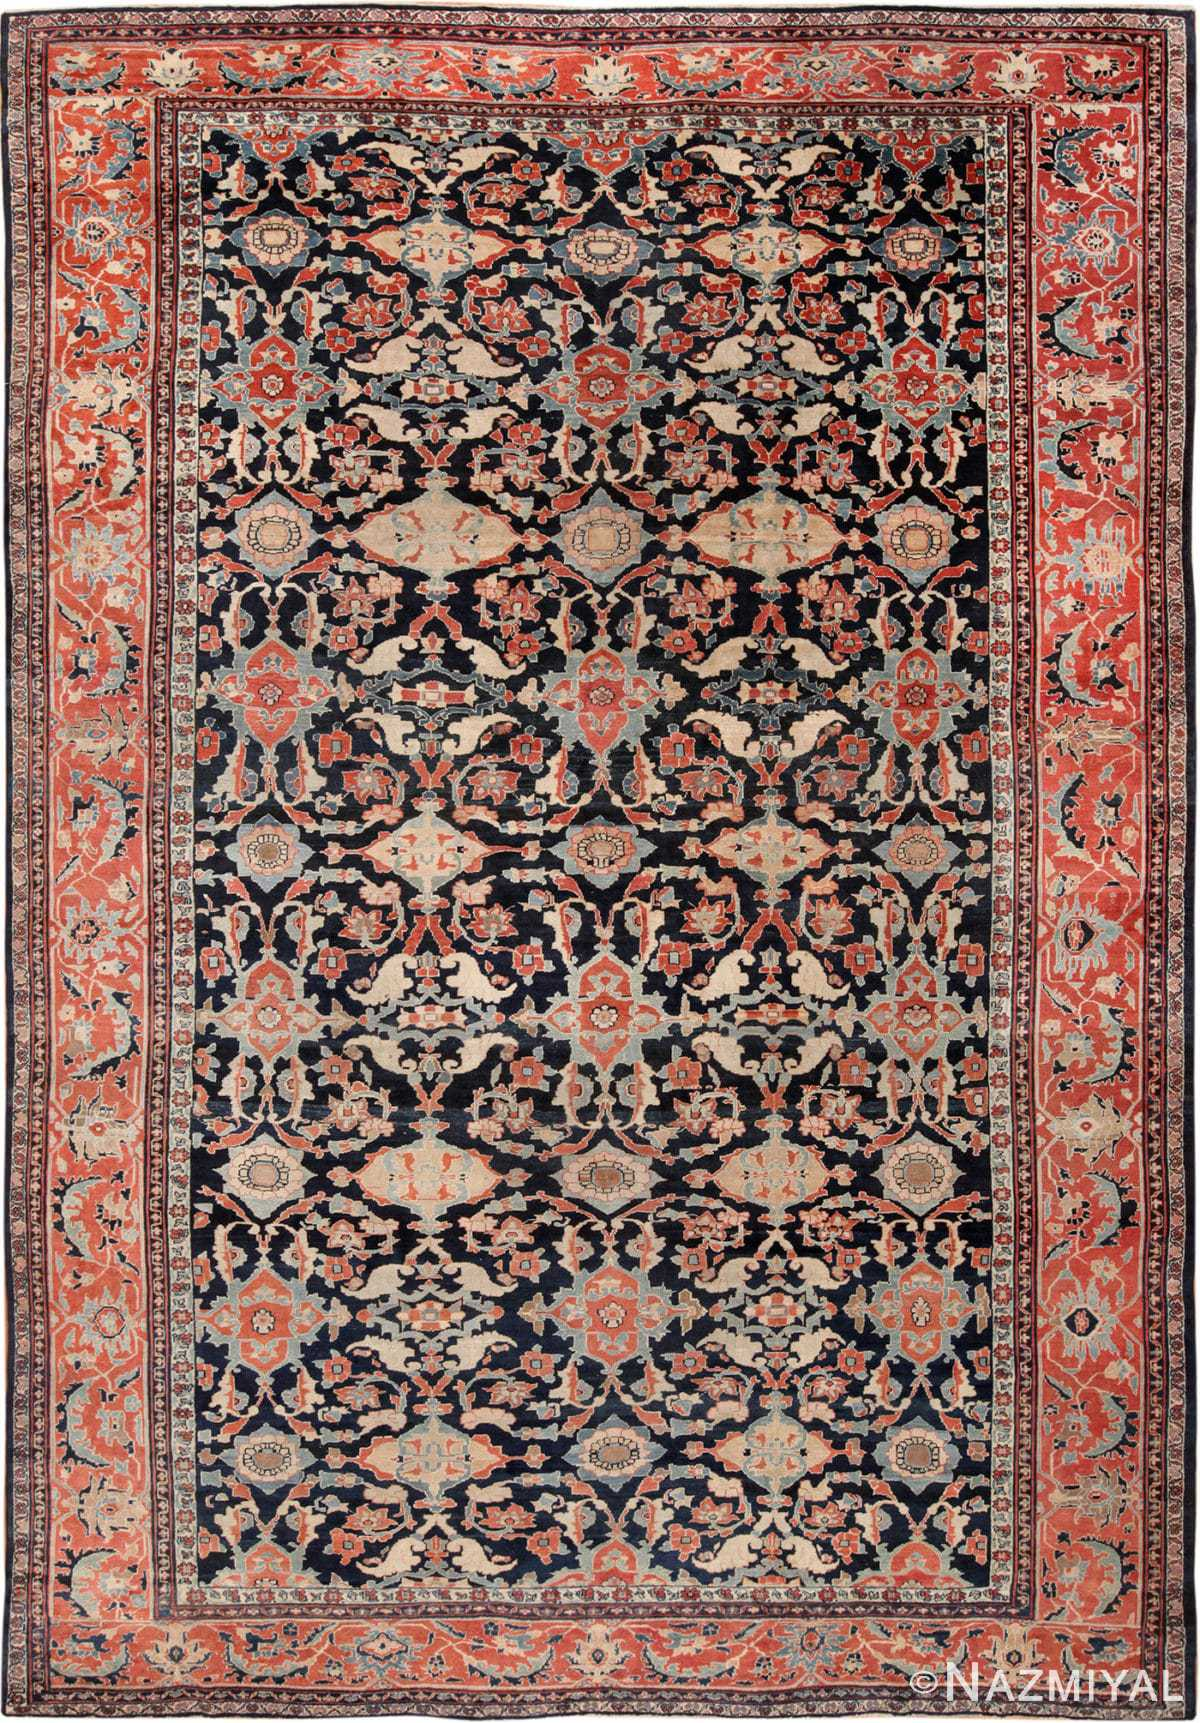 Large Navy Blue Antique Persian Sultanabad Rug 49678 by Nazmiyal